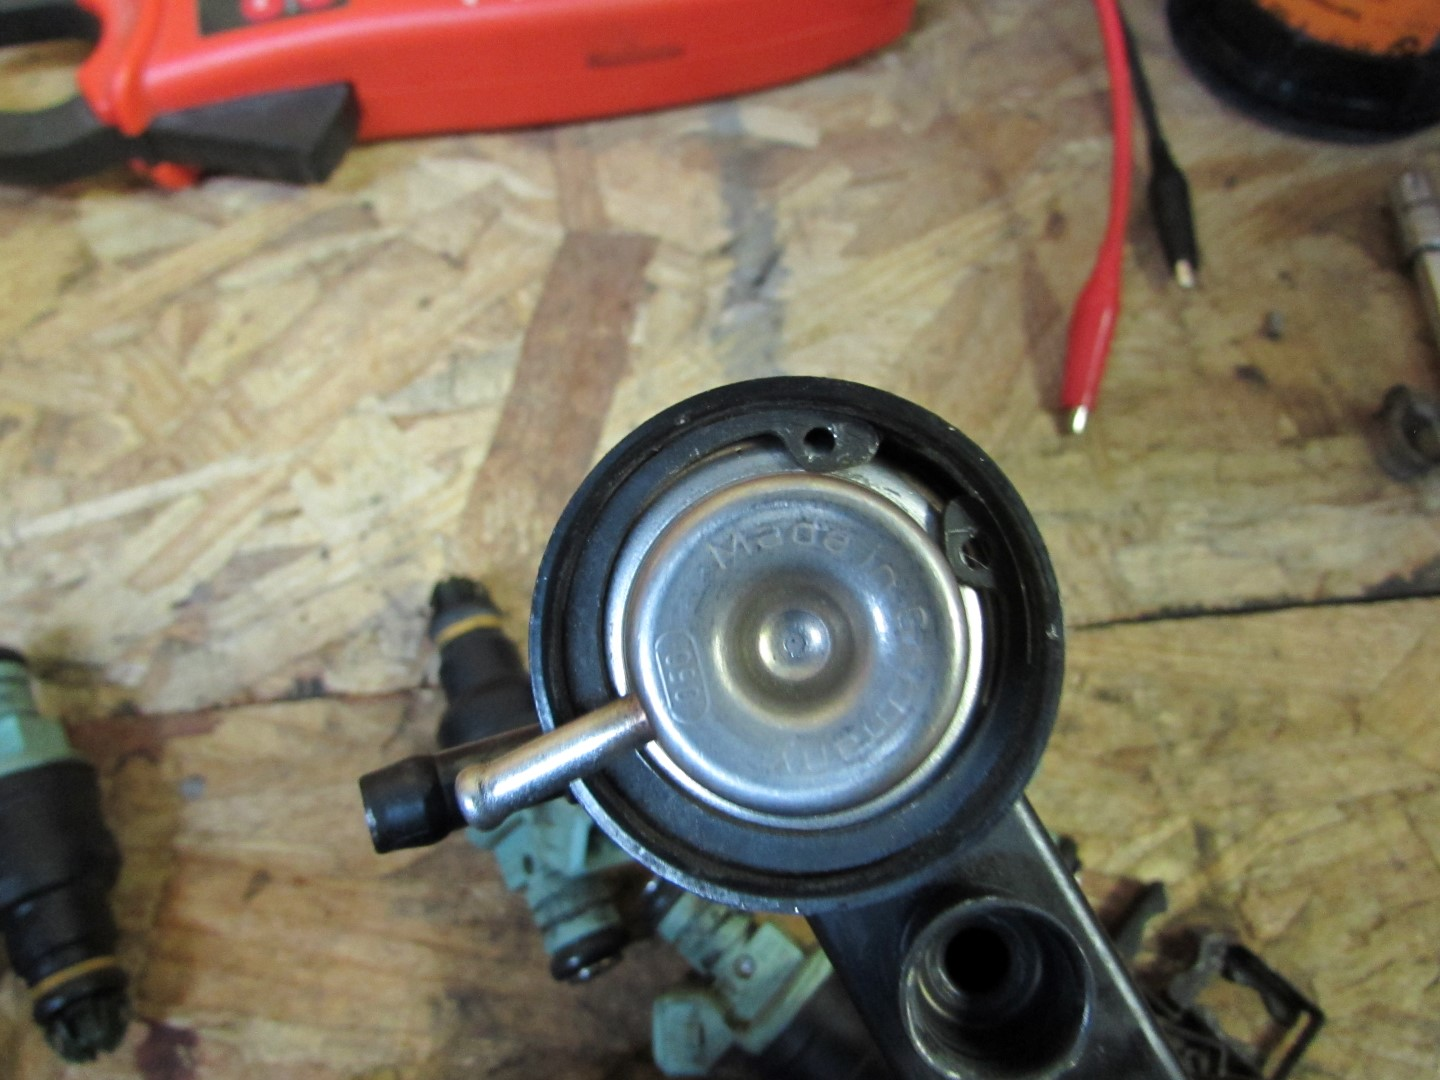 hight resolution of when re installing the new fuel pressure regulator be sure the circlip is properly seated you can check by looking for the tab extruding from the